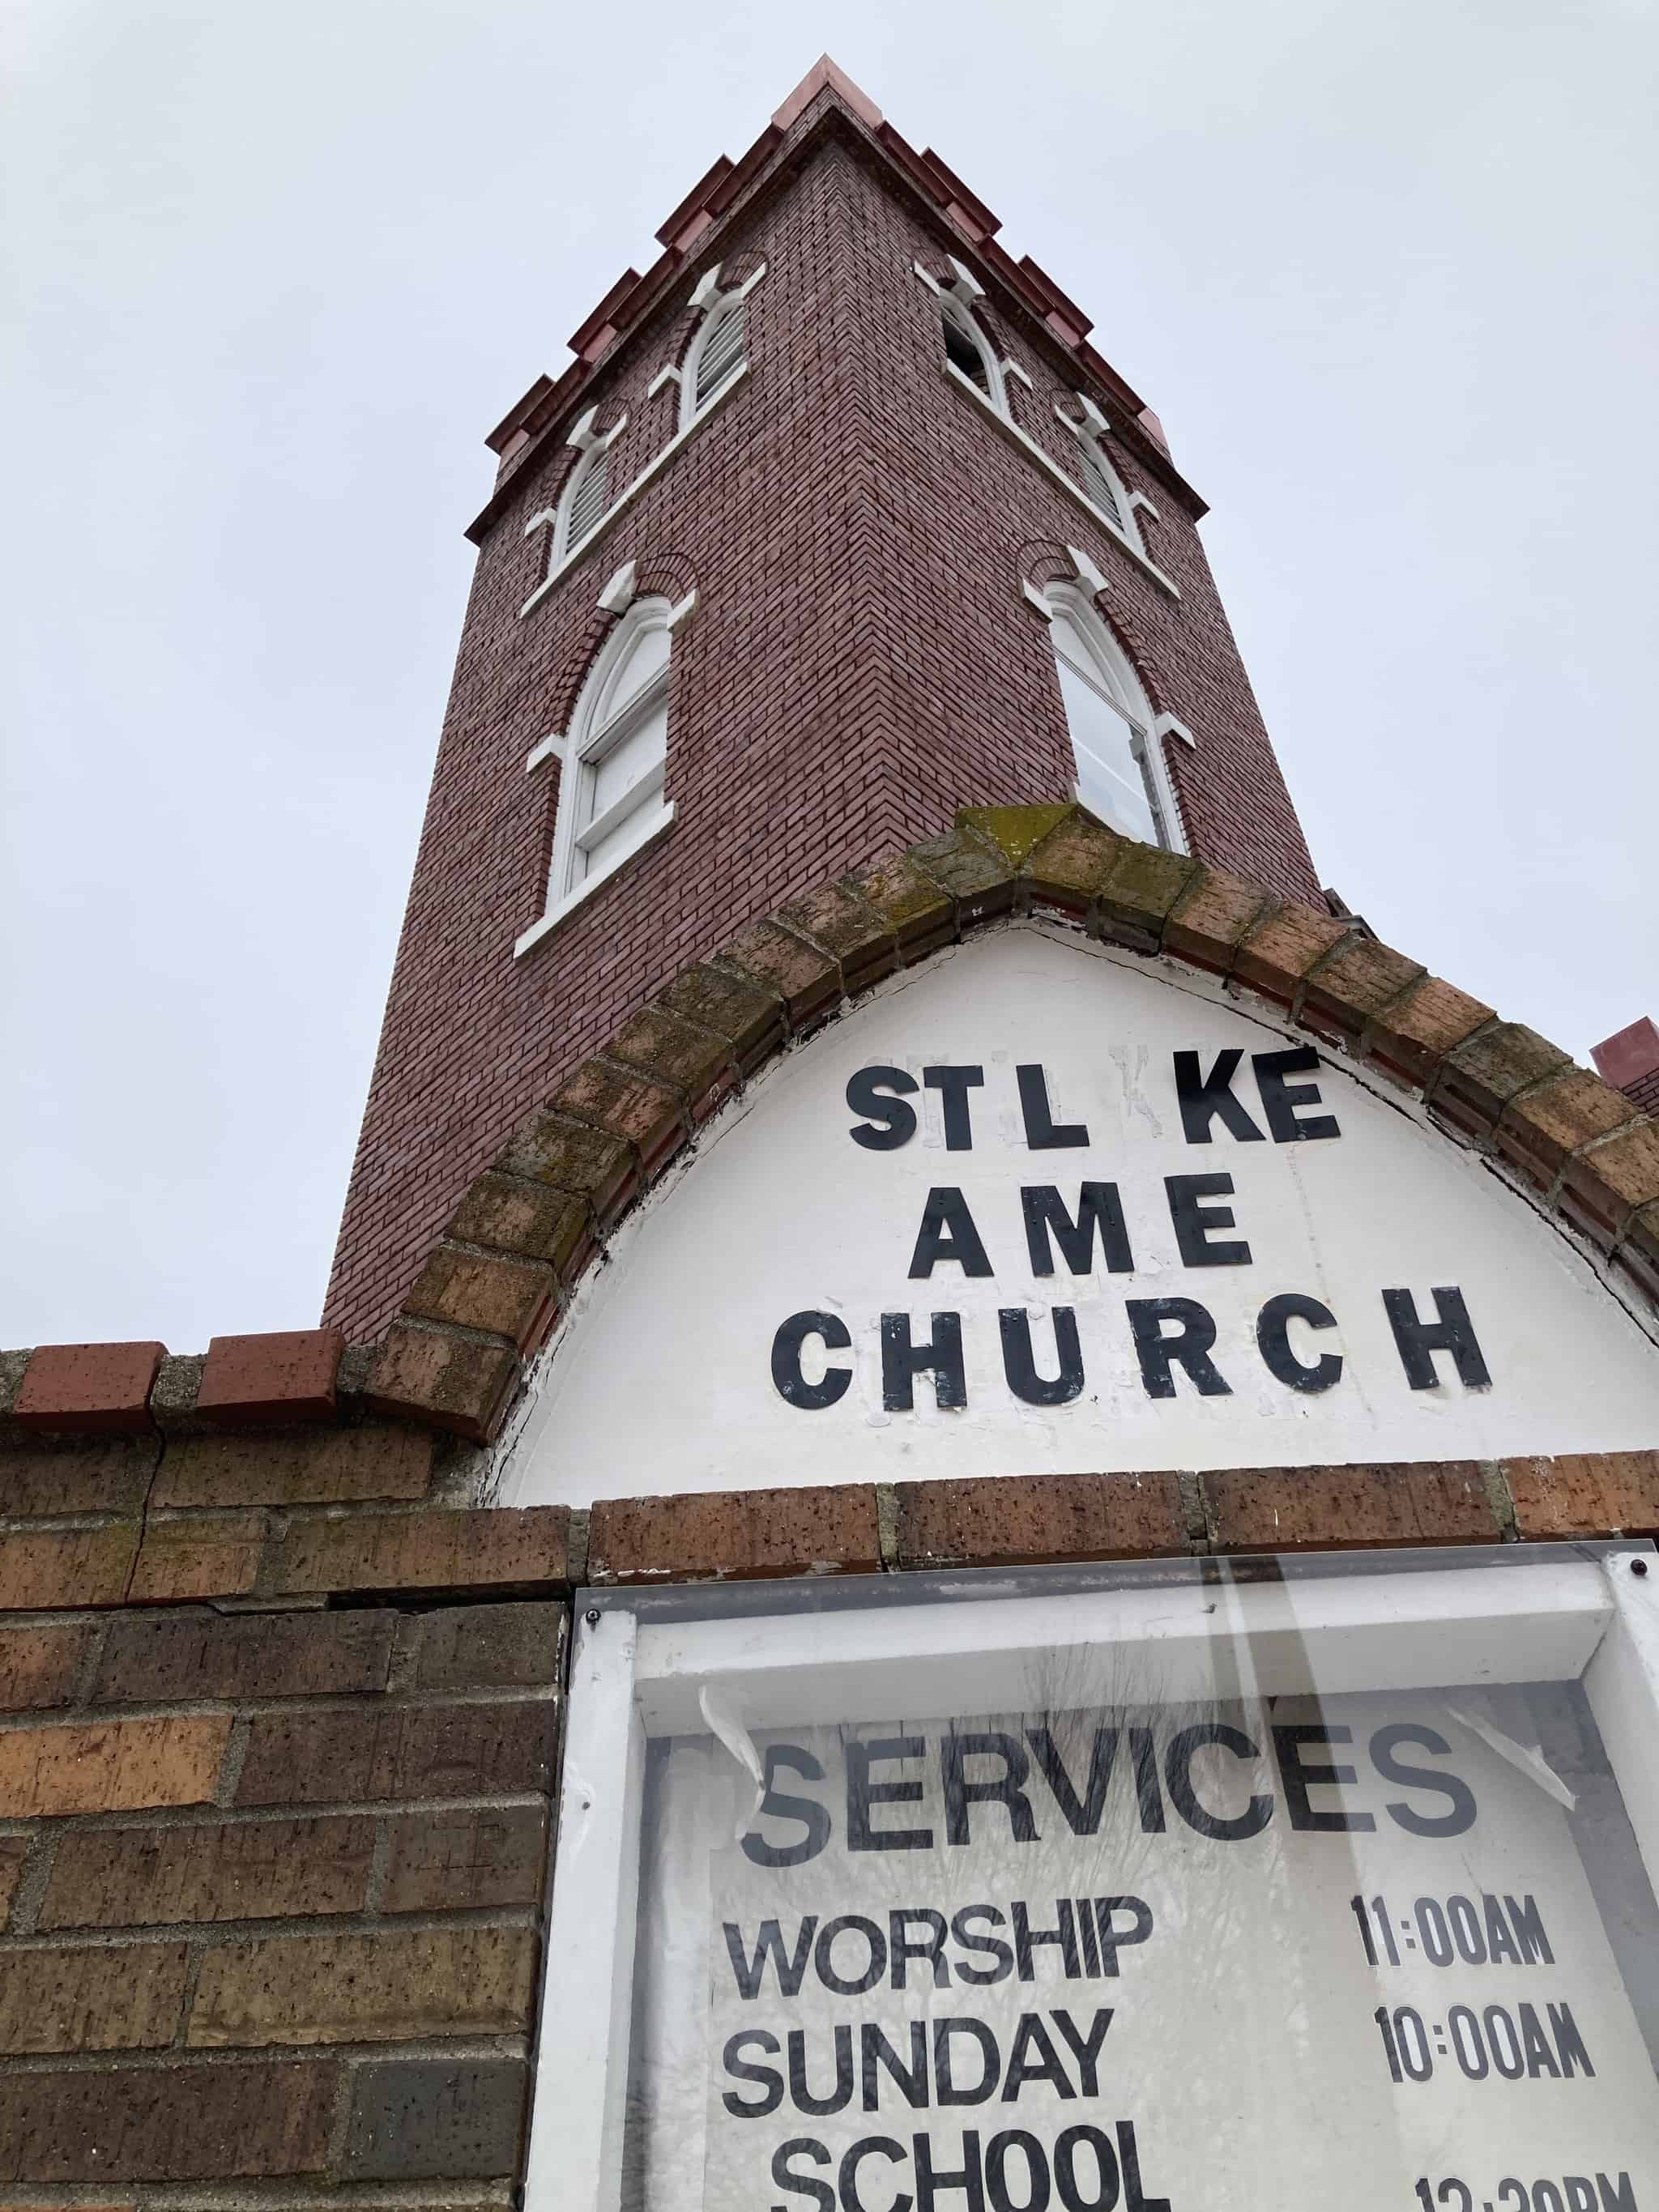 Built in 1910 at the corner of New York Street and Ninth Street in Lawrence, Kansas, the Gothic-Revival, red-brick church features twin towers, lancet windows and stained glass.